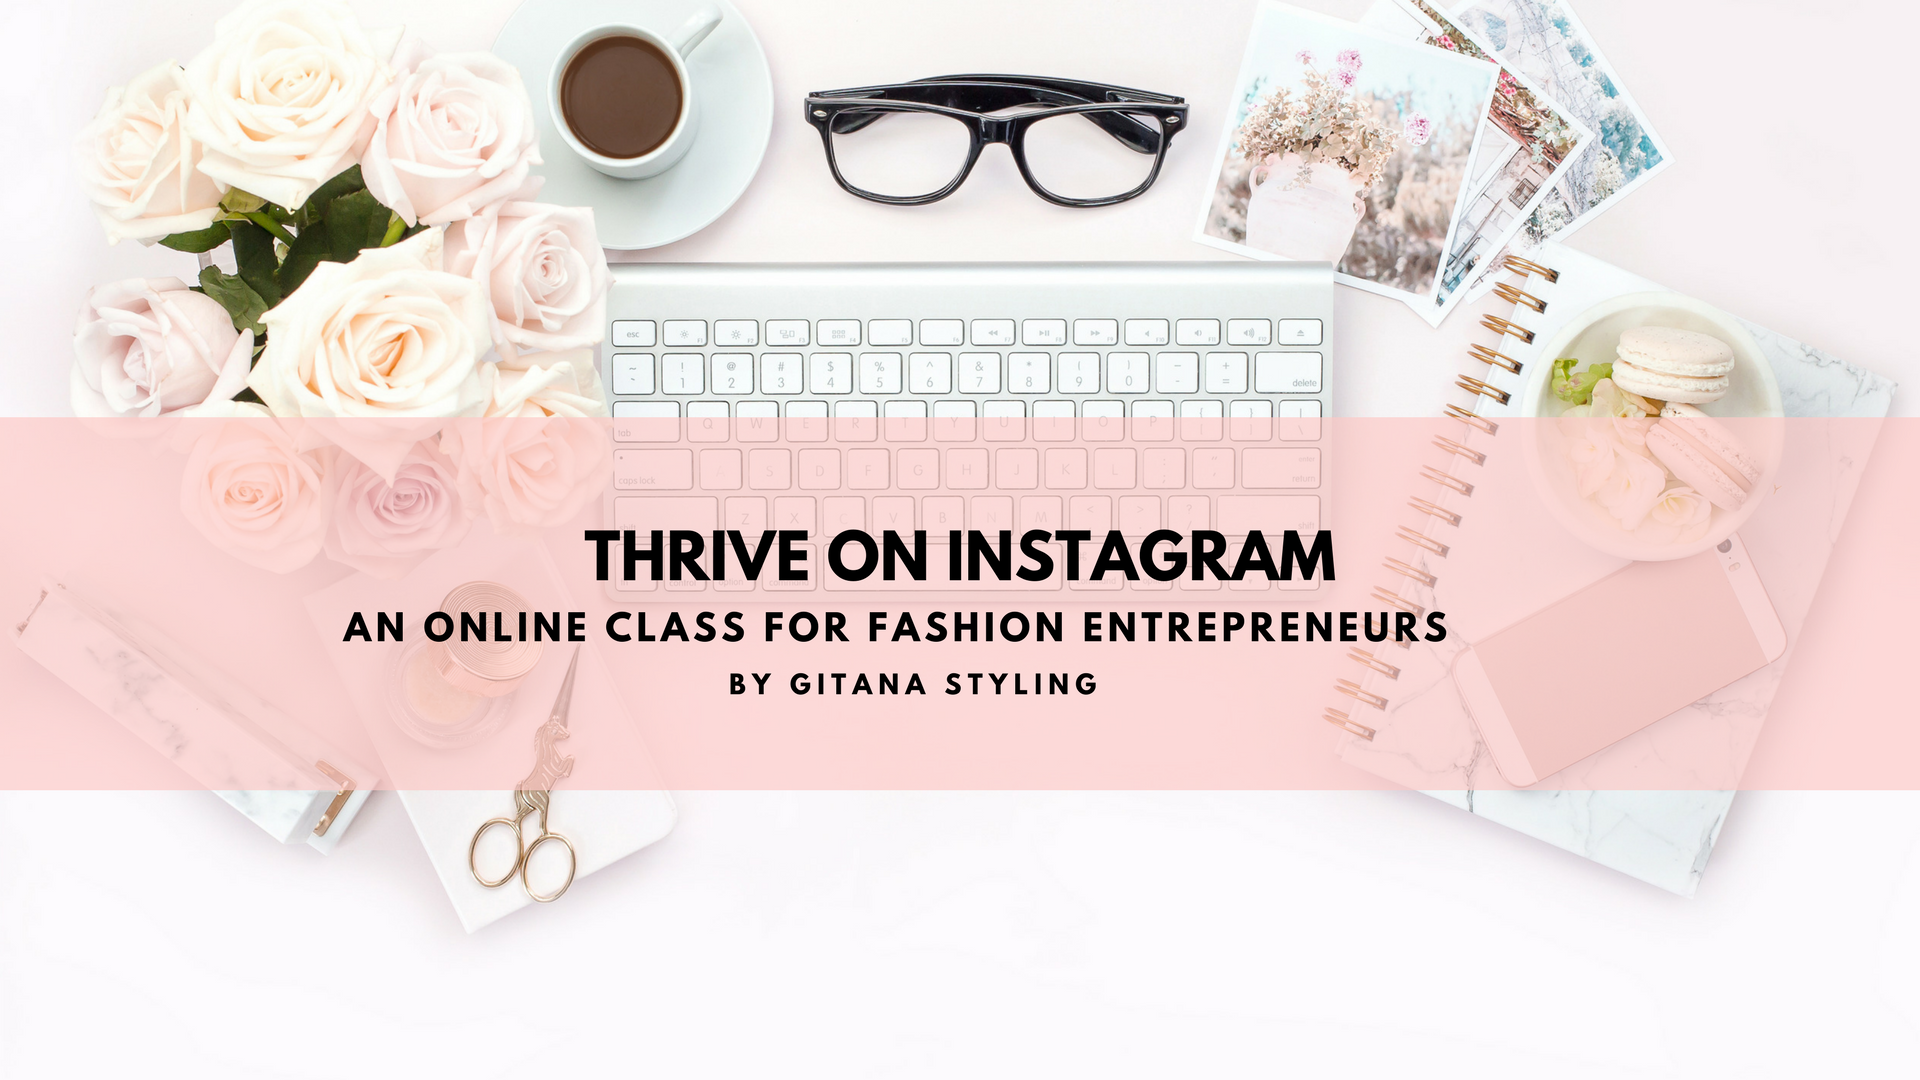 Thrive on Instagram coming soon